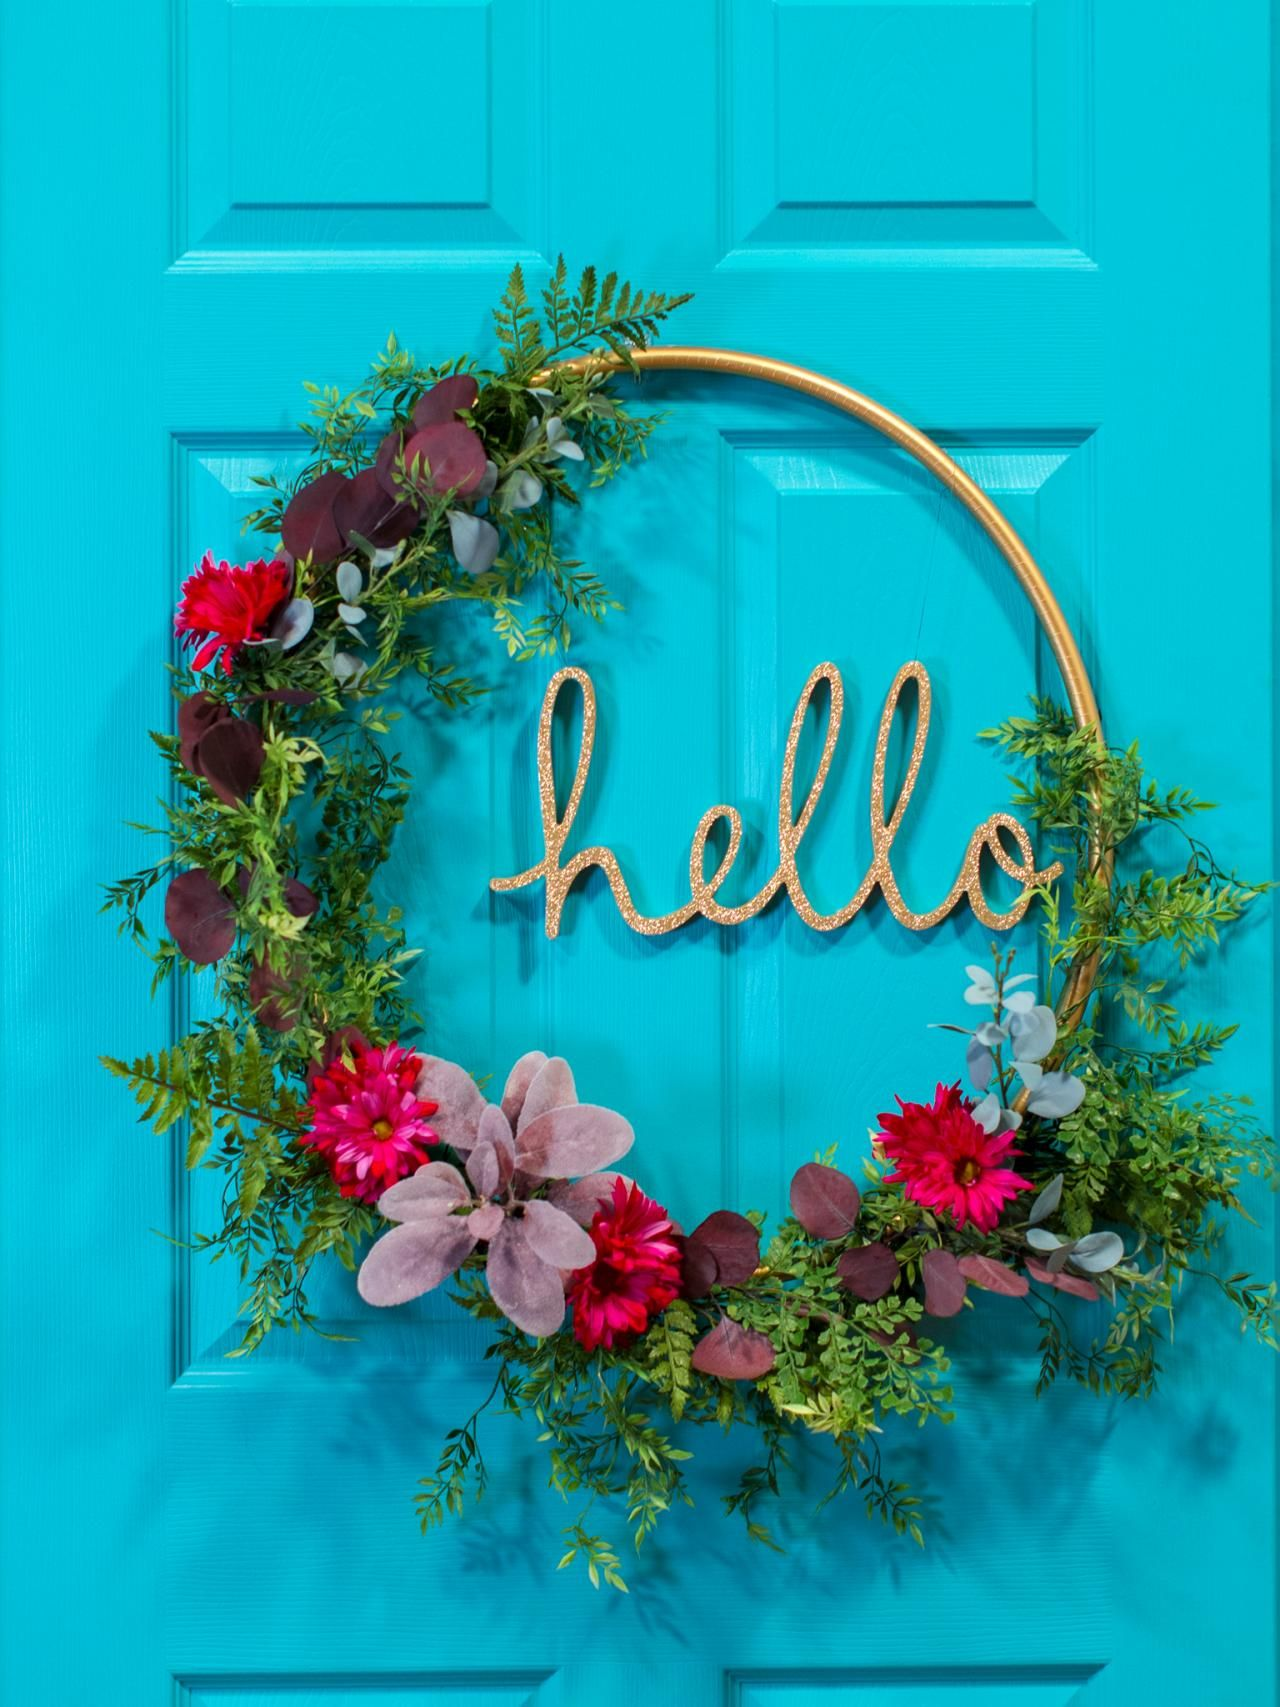 How to Make a Hula Hoop Word Wreath | Flower boxes, Box and Flower